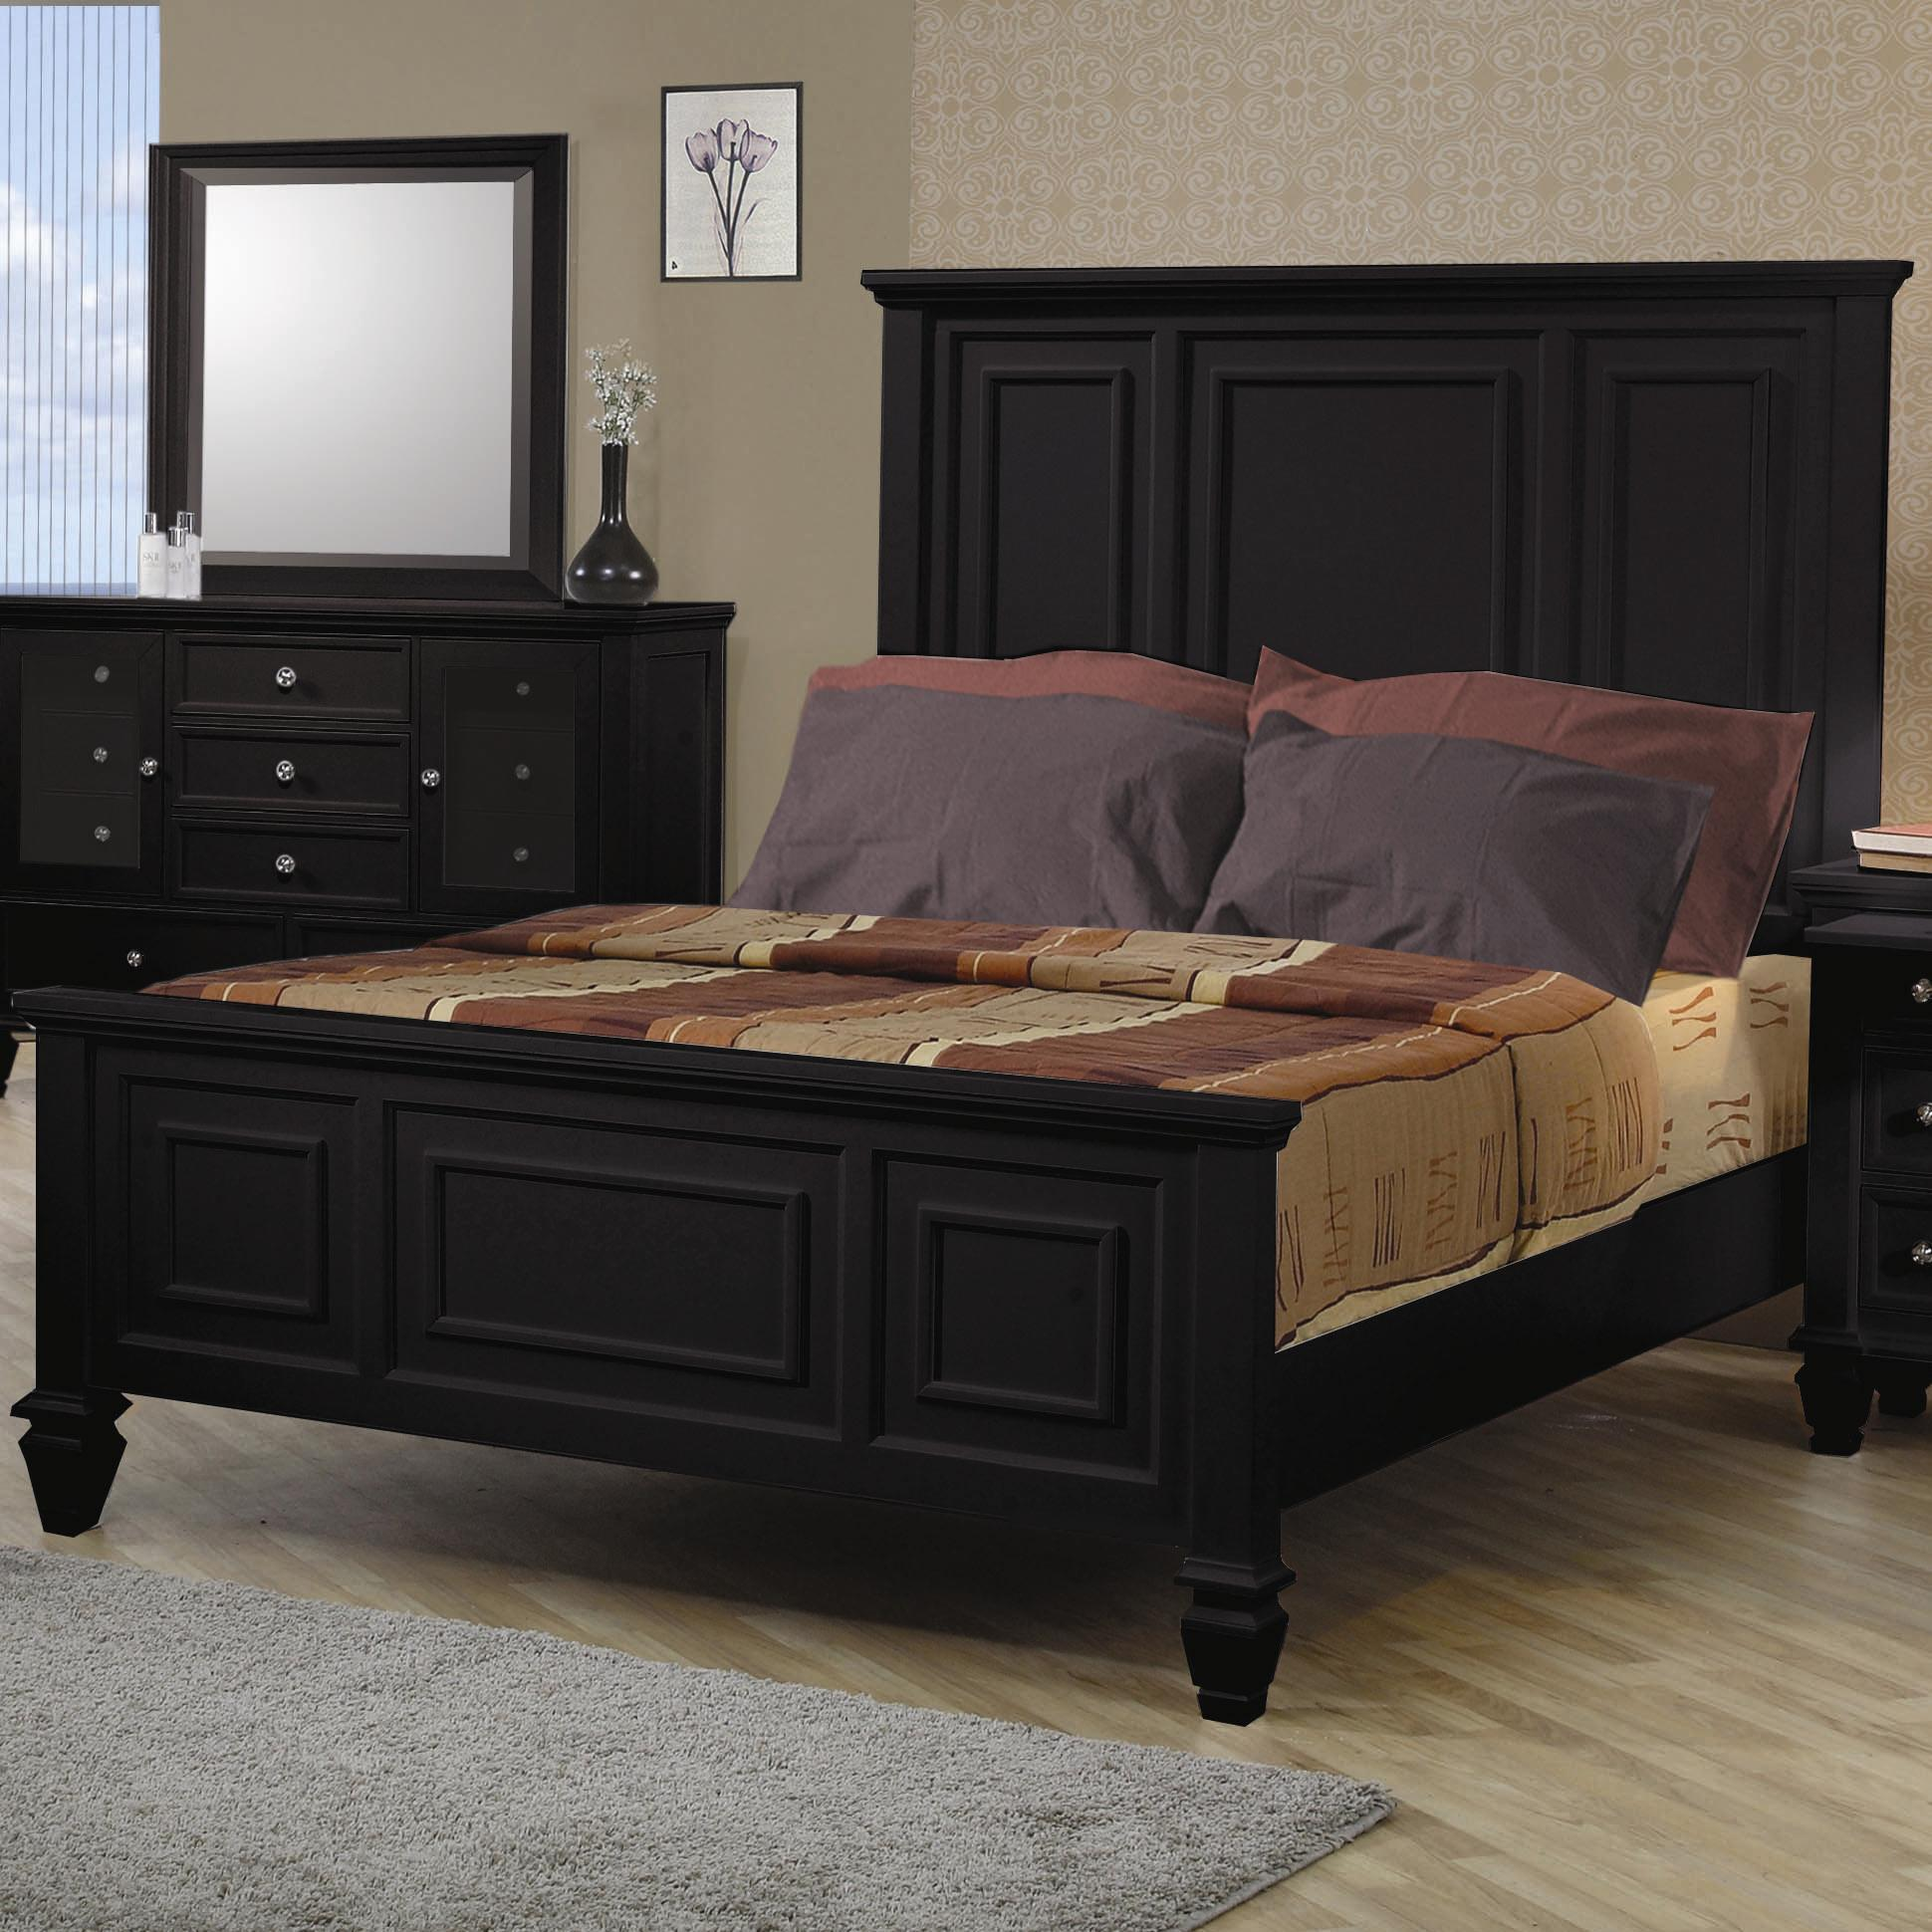 Sandy Beach King Headboard & Footboard Bed by Coaster at Prime Brothers Furniture